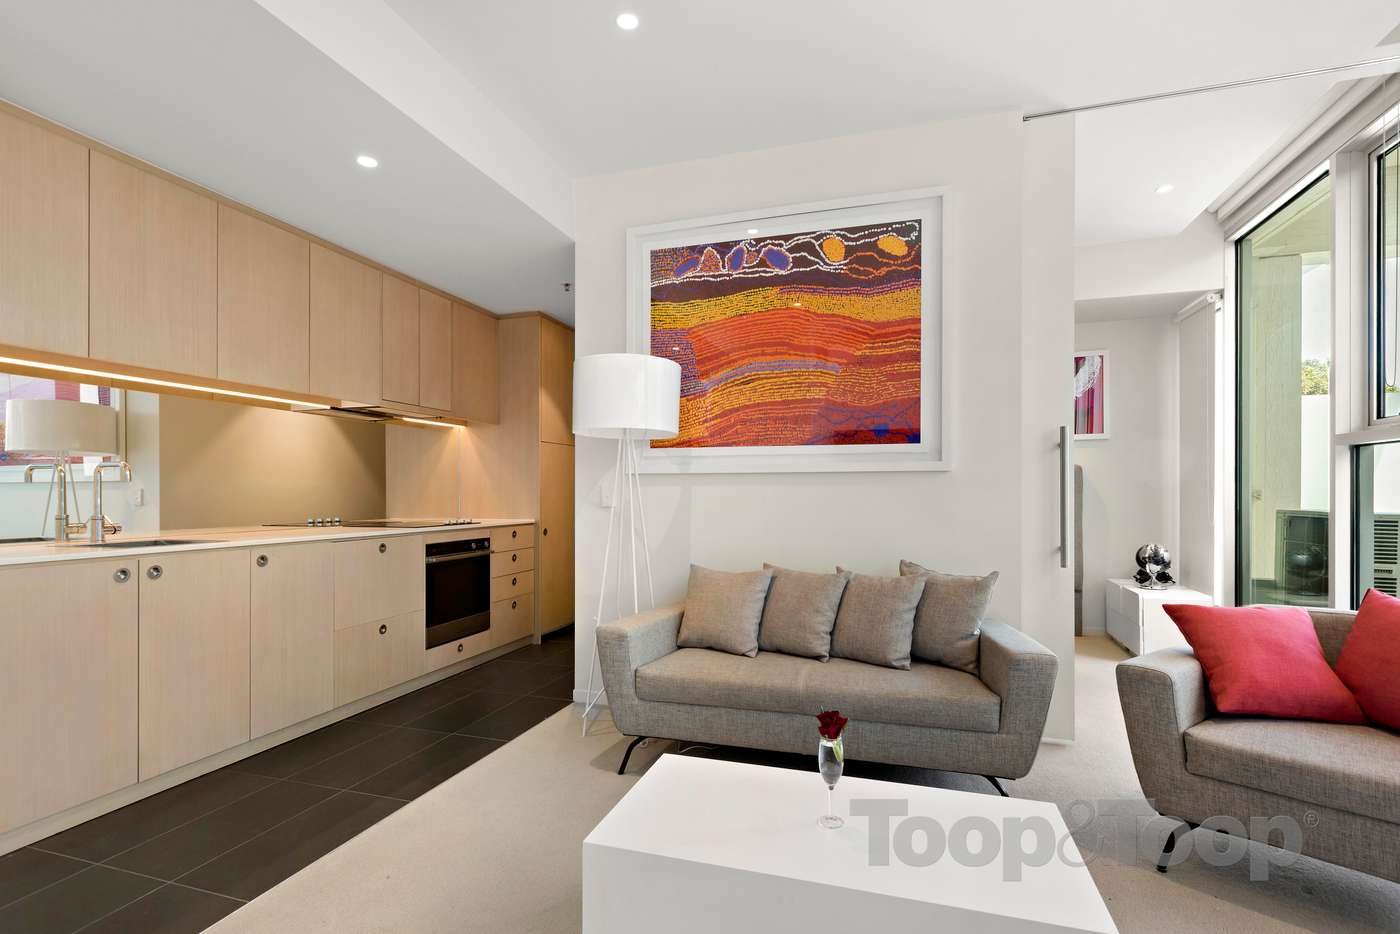 Sixth view of Homely apartment listing, 215/33 Warwick Street, Walkerville SA 5081